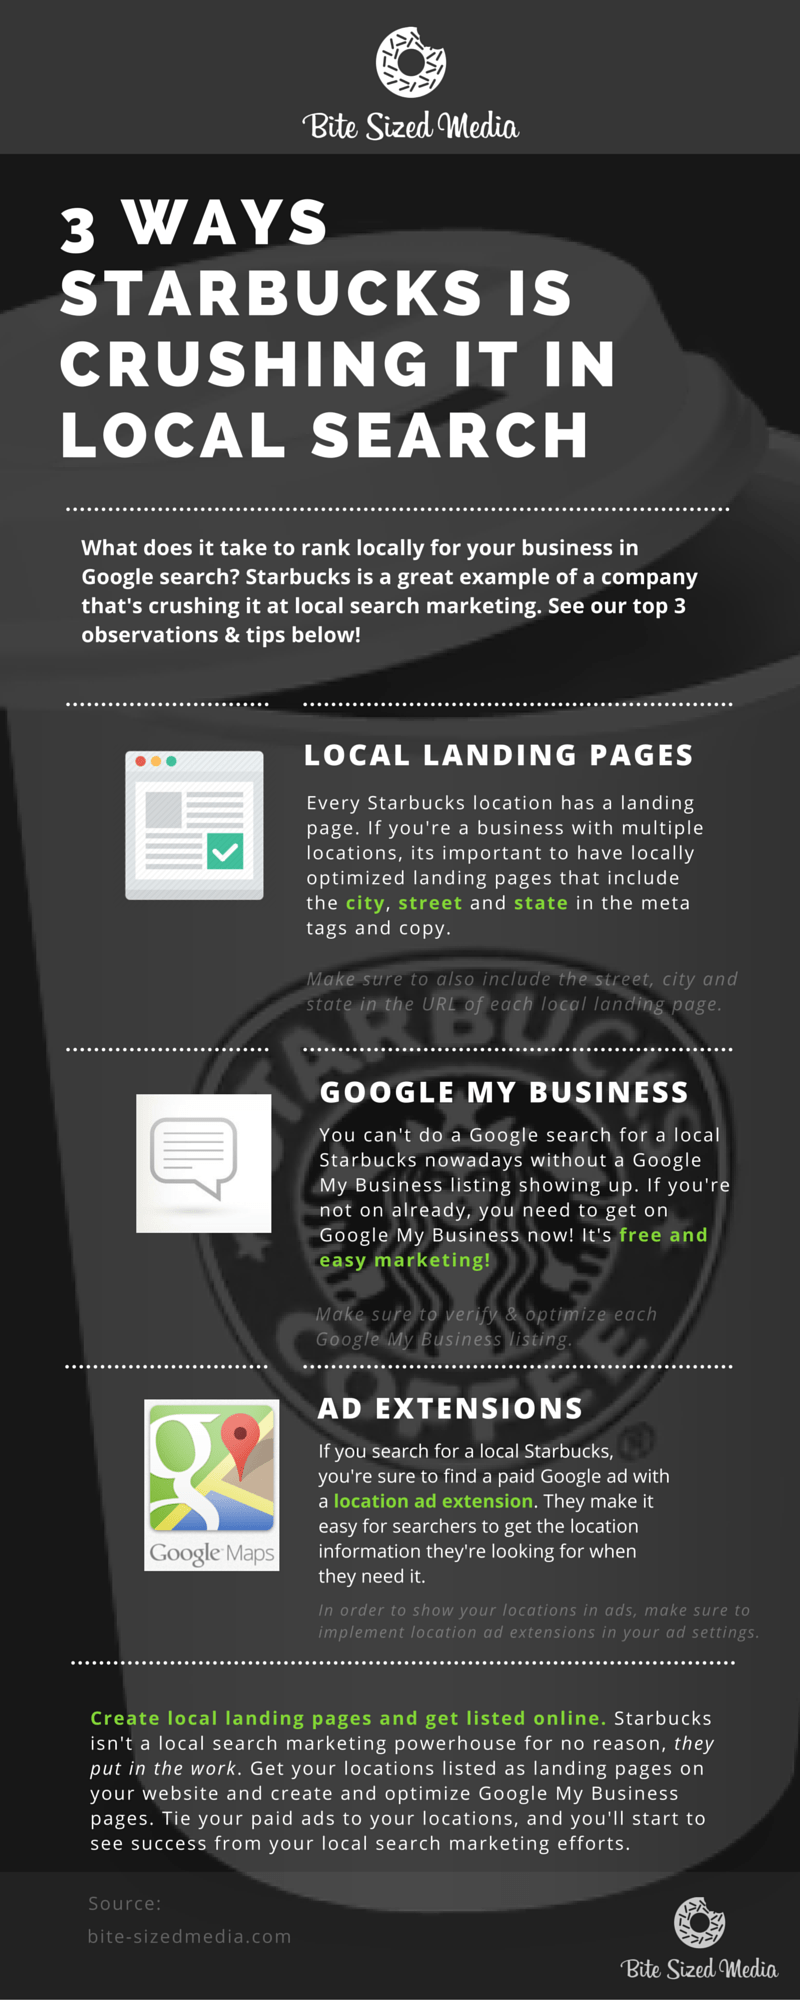 3 Ways Starbucks is Crushing It in Local Search